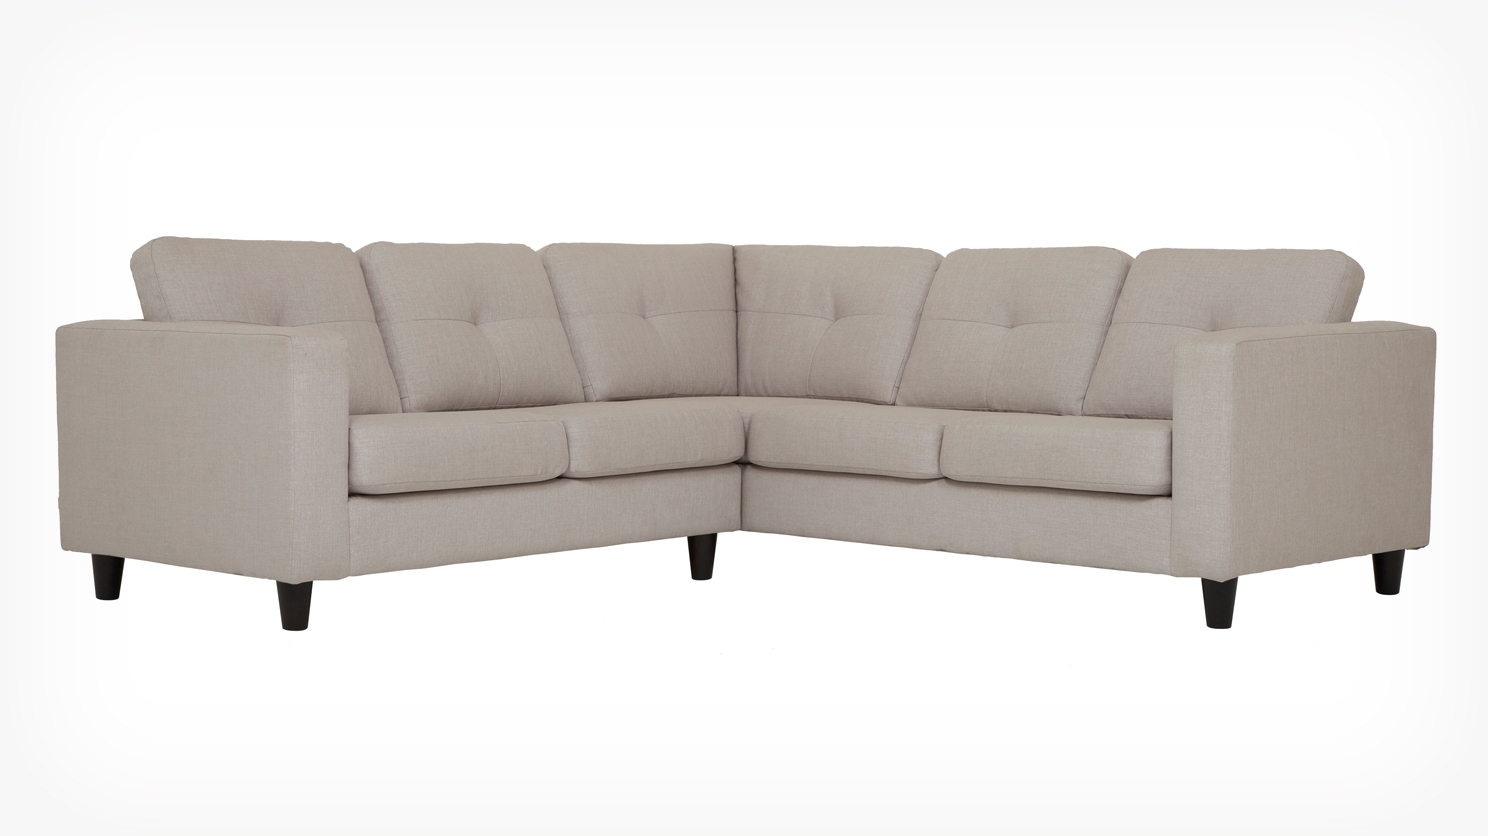 Solo 2 Piece Sectional Sofa – Fabric For Current Eq3 Sectional Sofas (View 15 of 15)